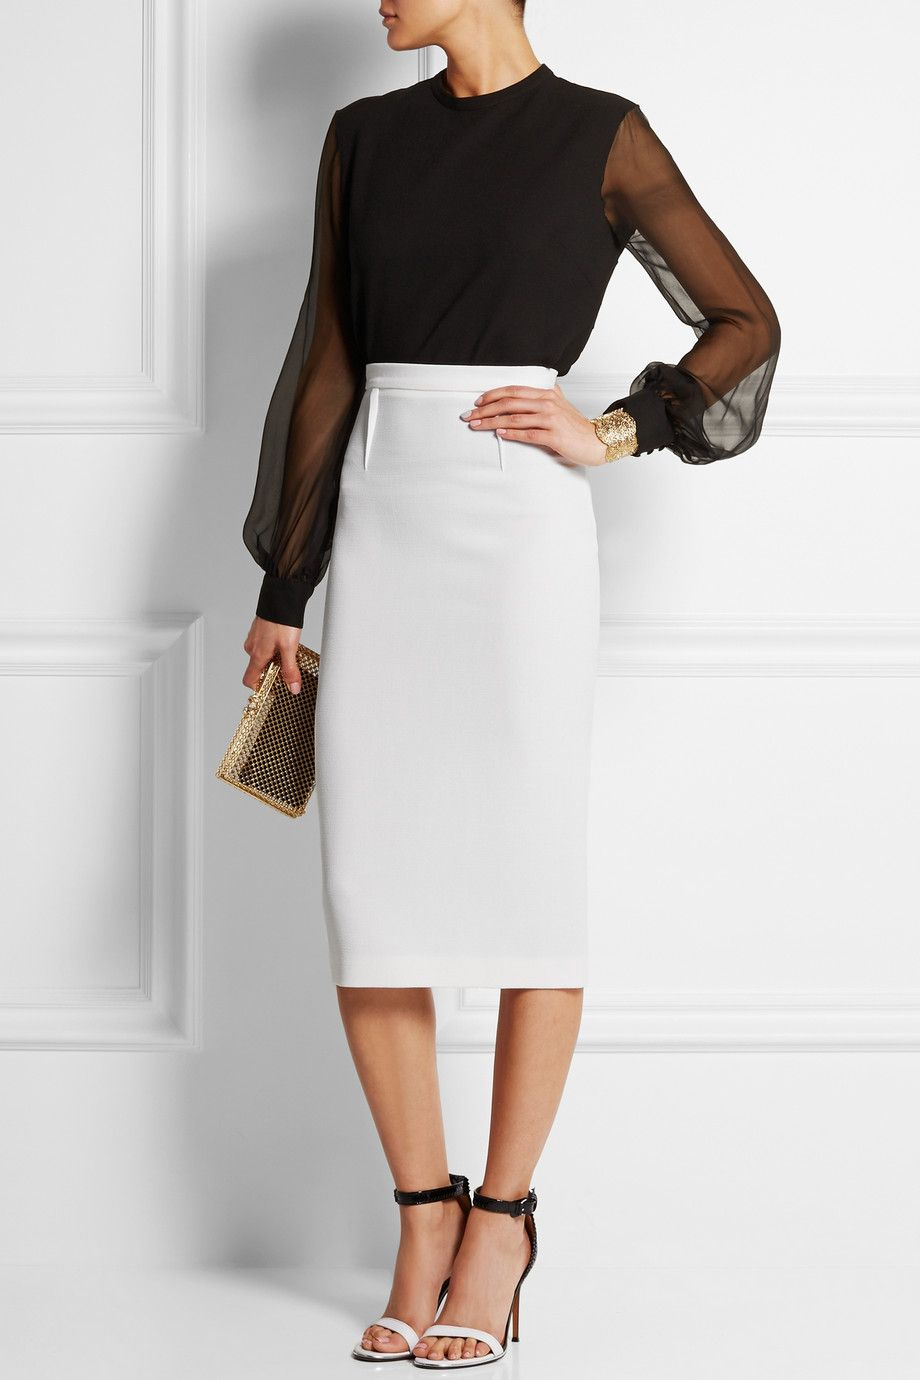 46904f6fd9 ROLAND MOURET Arreton wool-crepe pencil skirt $795| EDITORS' NOTES &  DETAILS Roland Mouret's 'Arreton' pencil skirt is designed to flatter – it  smooths ...